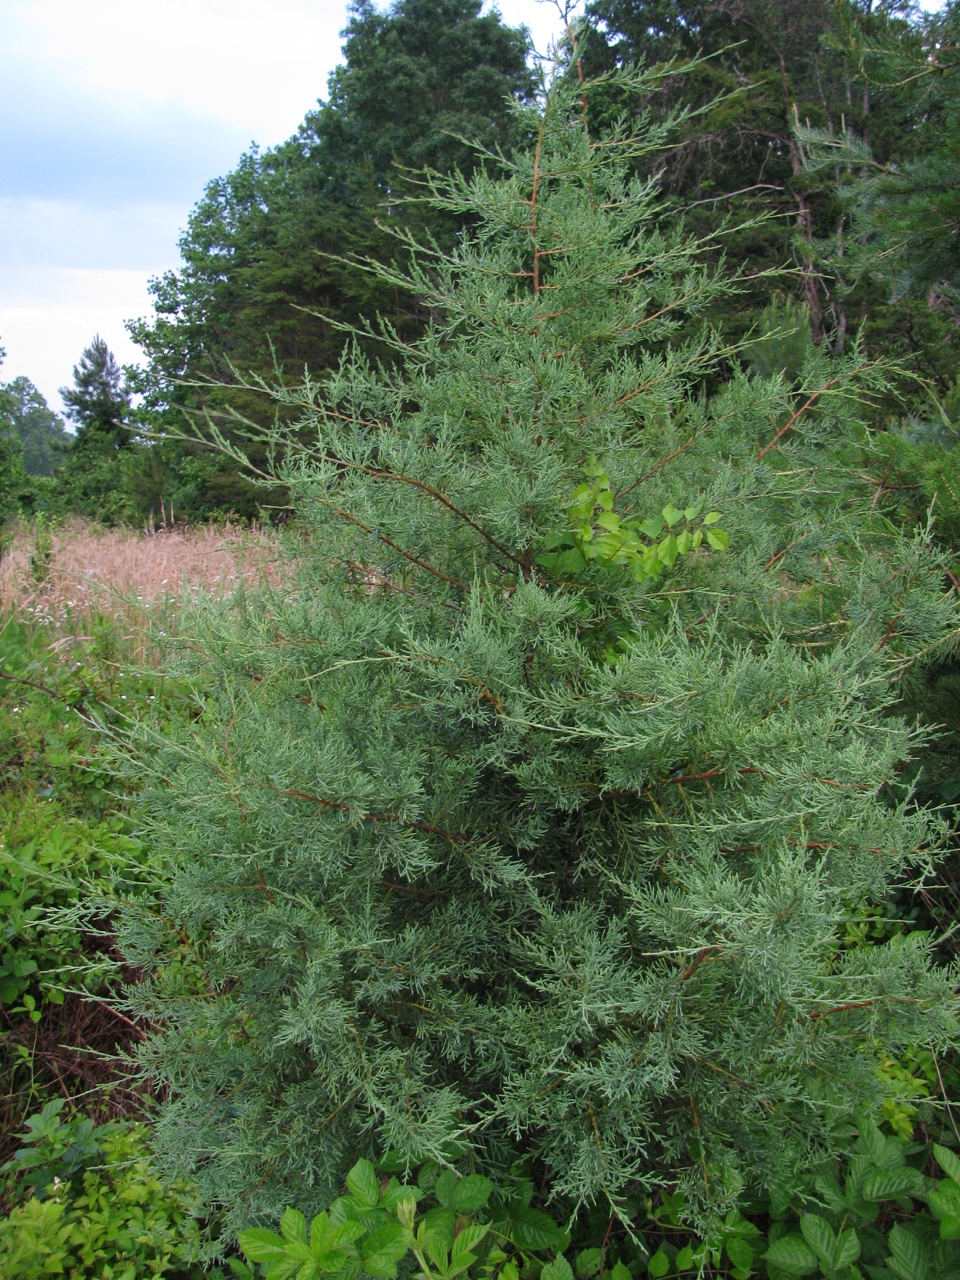 The Scientific Name is Juniperus virginiana. You will likely hear them called Eastern Red Cedar. This picture shows the Young tree with blue-green color. The color varies with some specimens being more green. of Juniperus virginiana